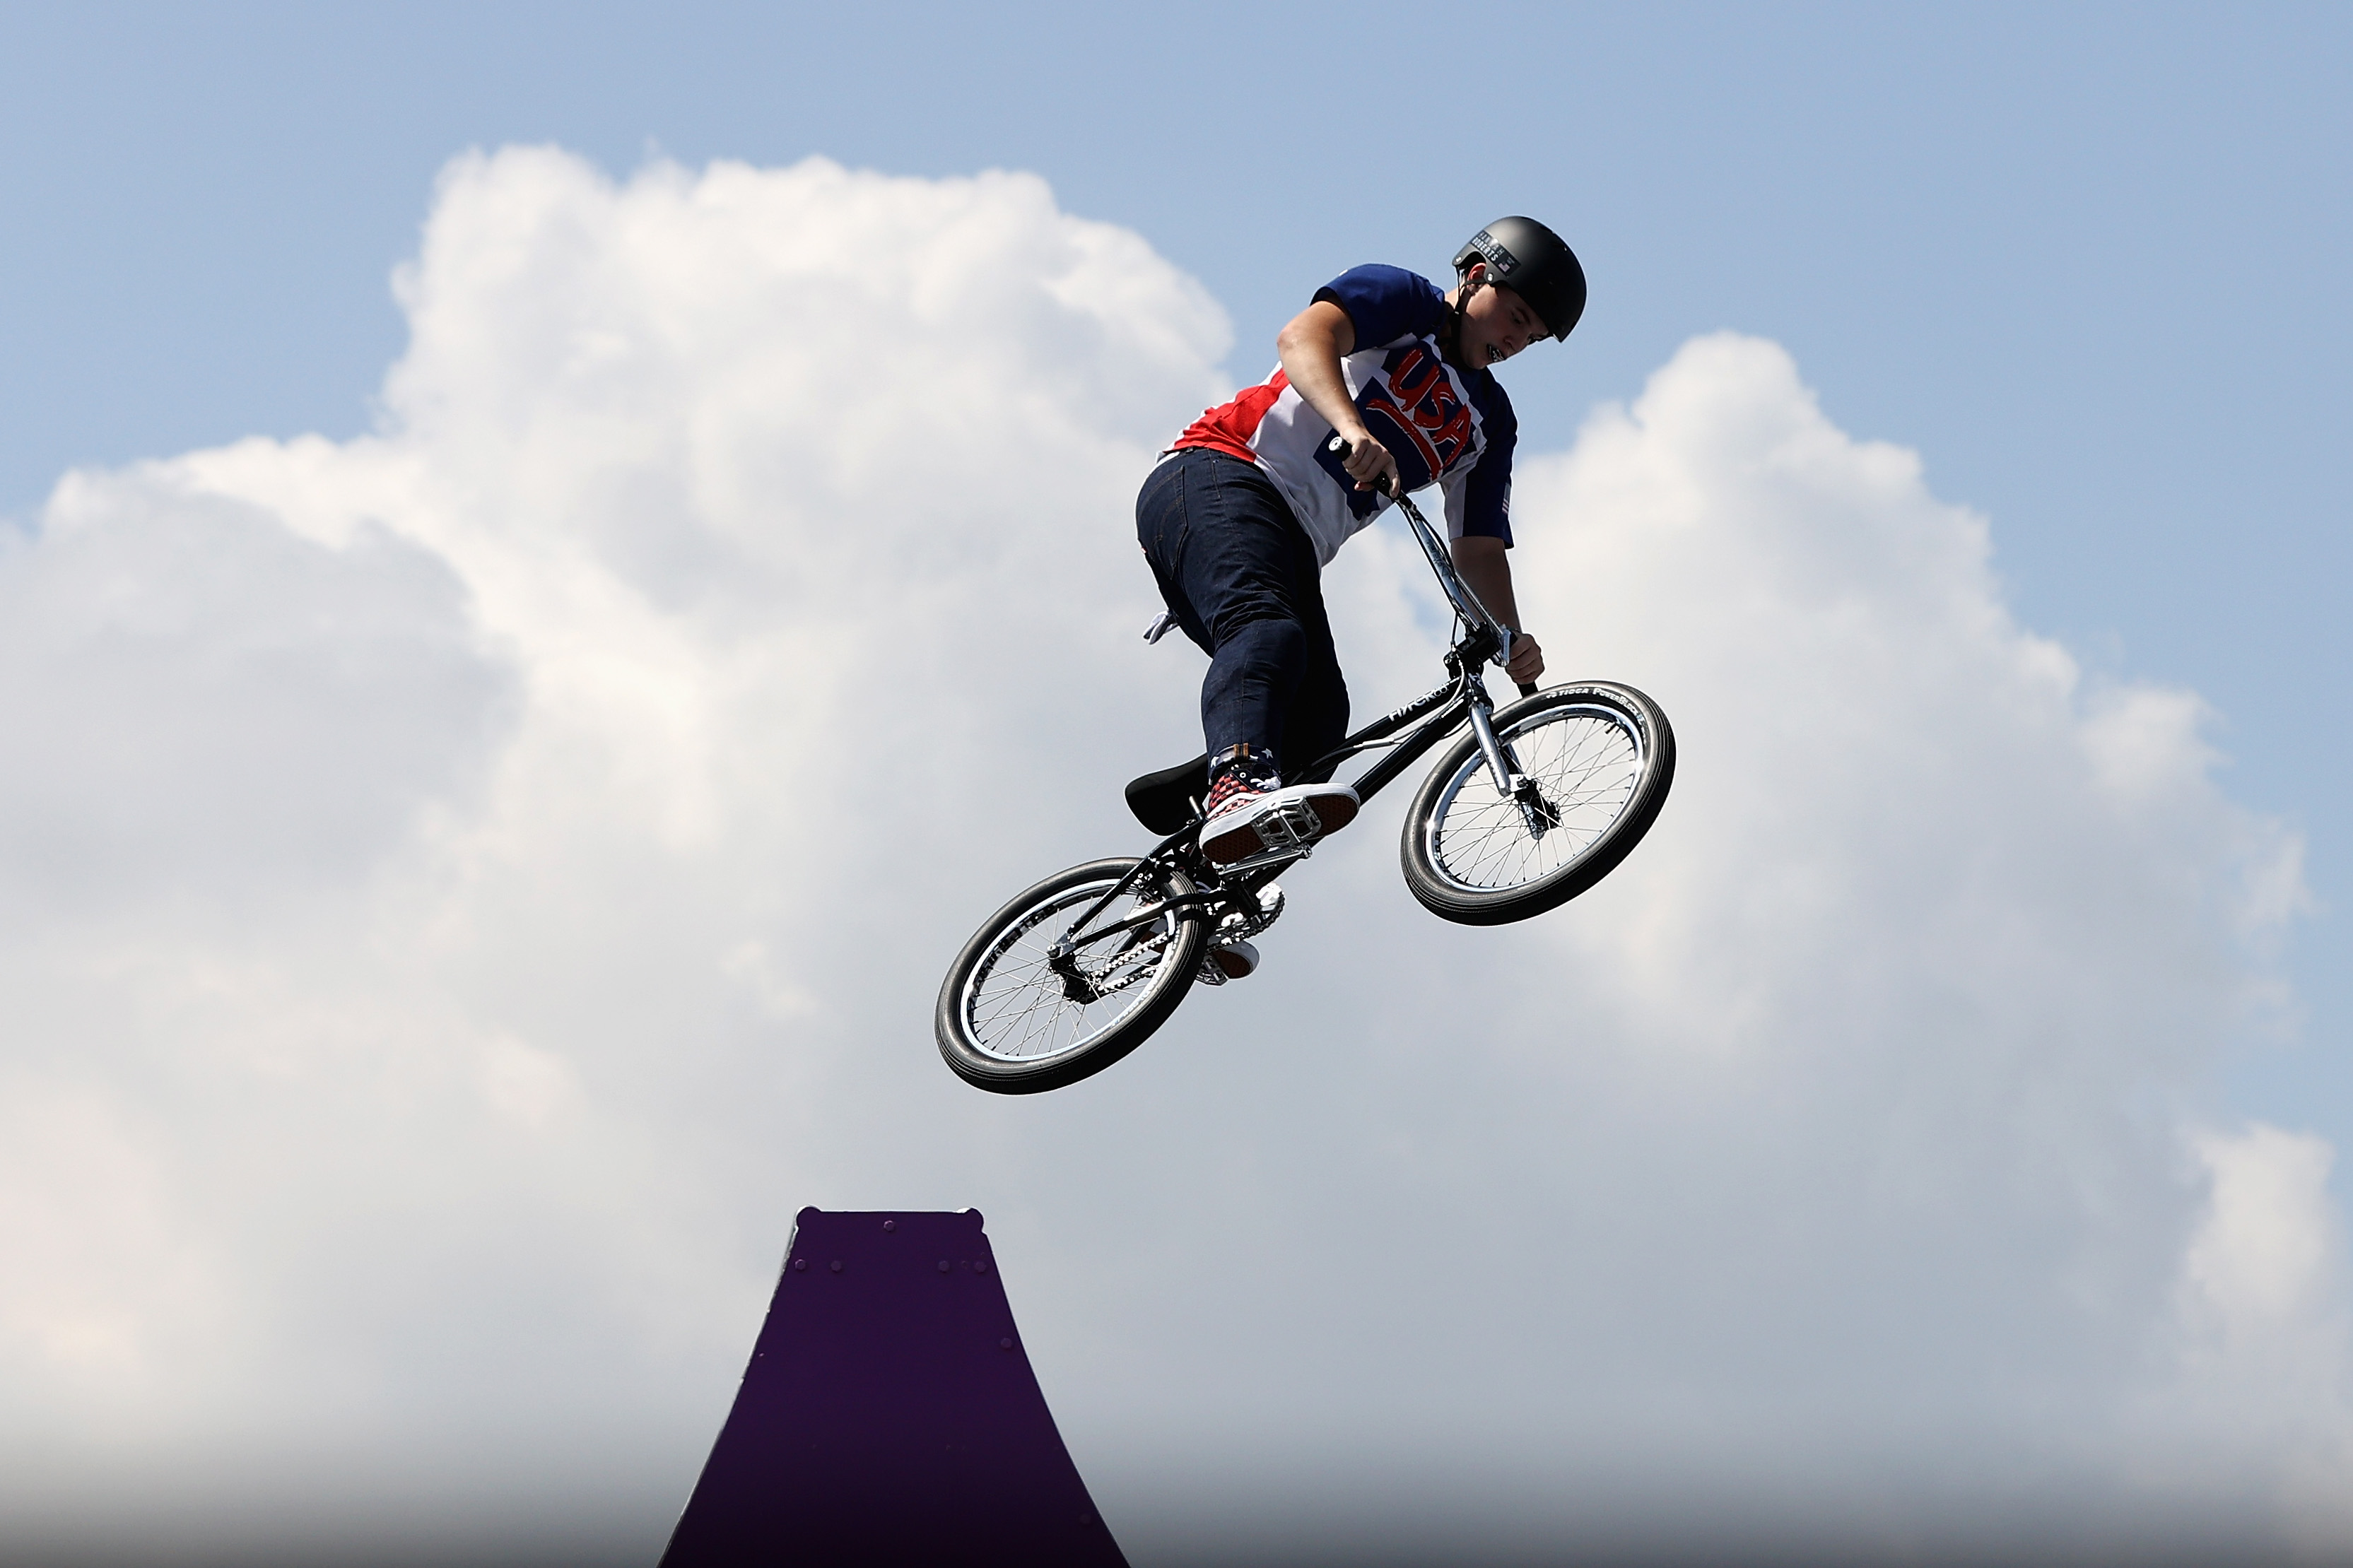 Around The Games - Olympics: Day 5